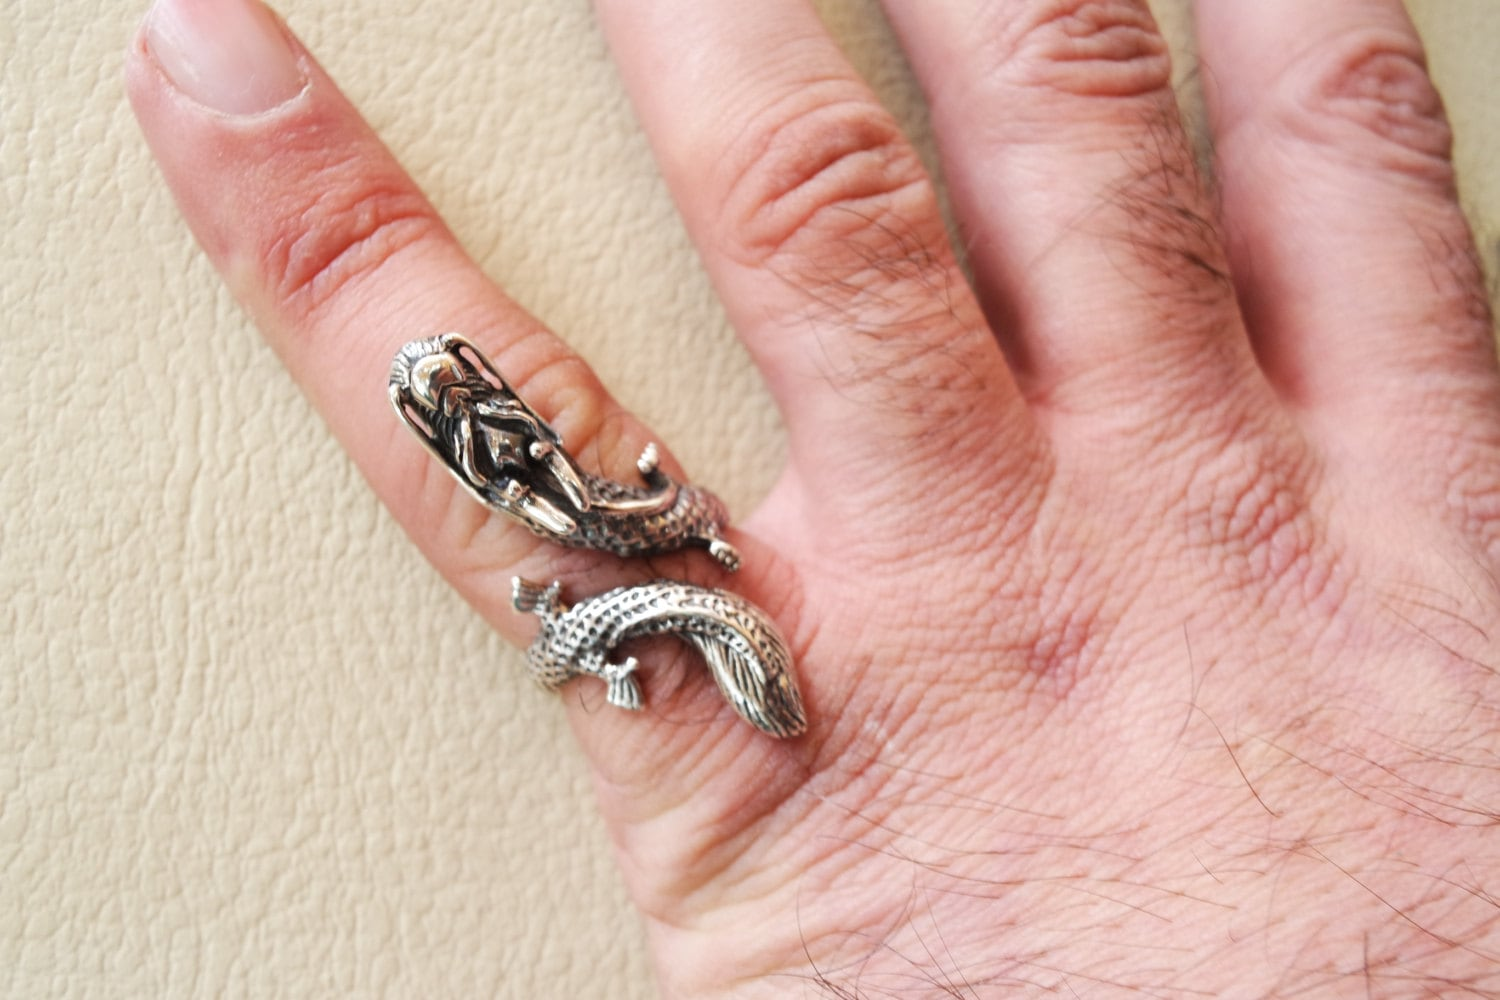 Chinese dragon ring sterling silver 925 man biker ring all